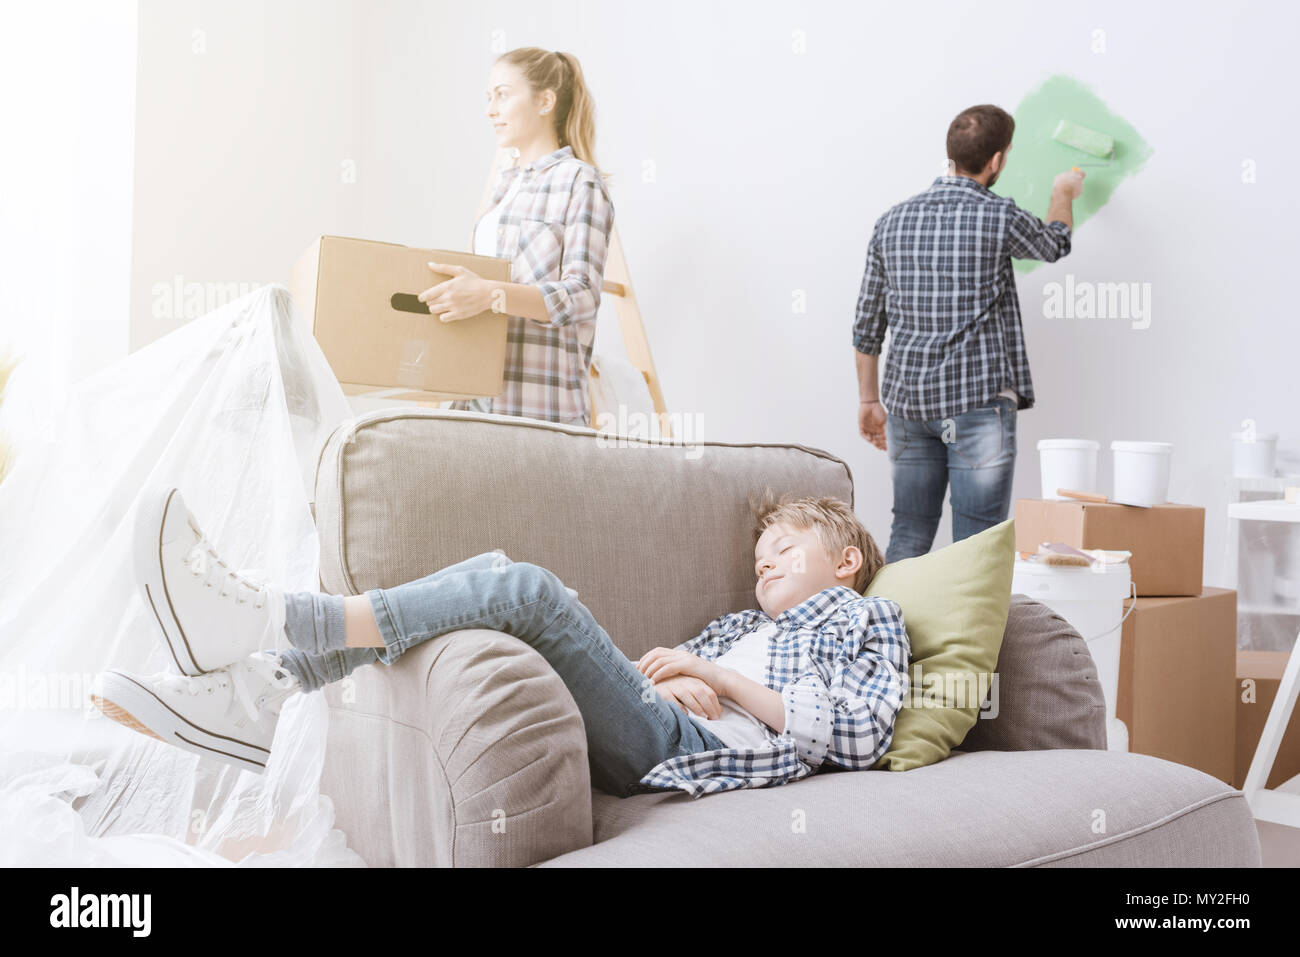 Young family moving into a new house, the mother is carrying a box, the father is painting the room and the child is sleeping on the armchair - Stock Image